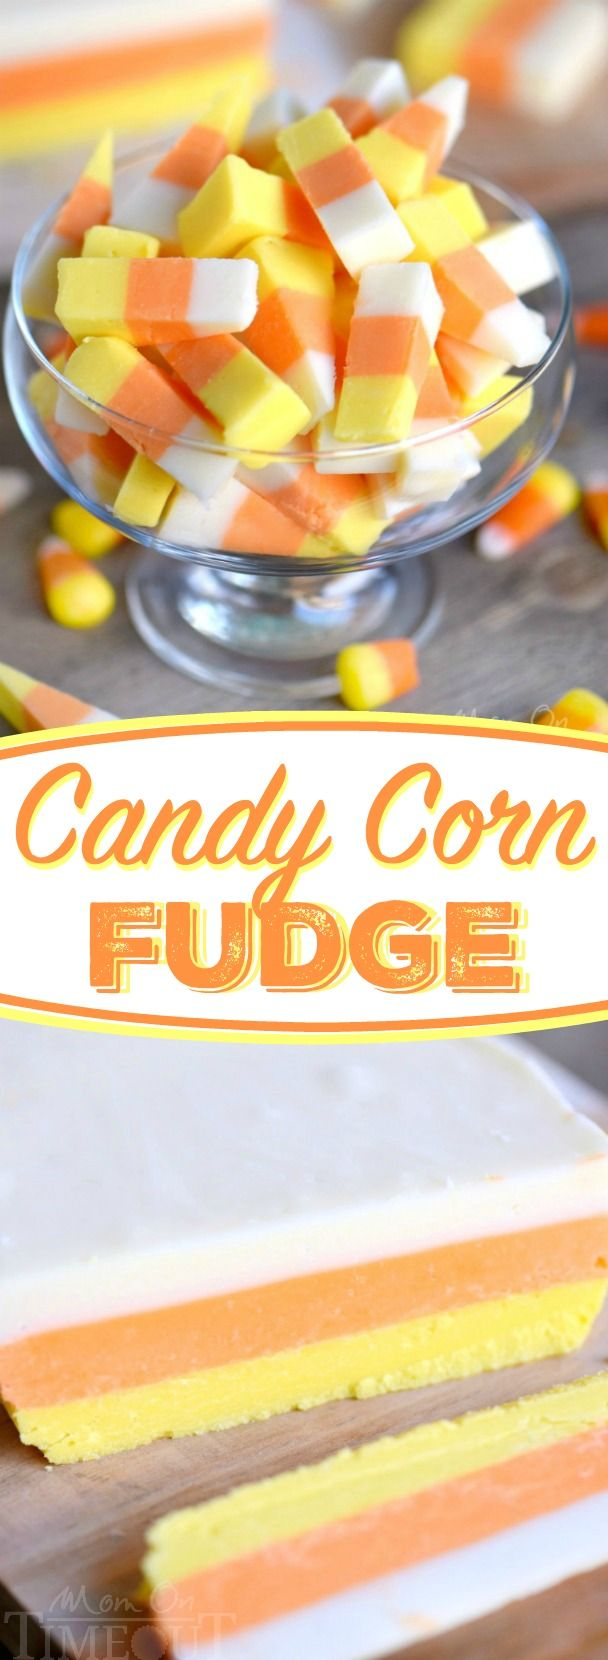 This Easy Candy Corn Fudge recipe is going to become an annual tradition! Layers…